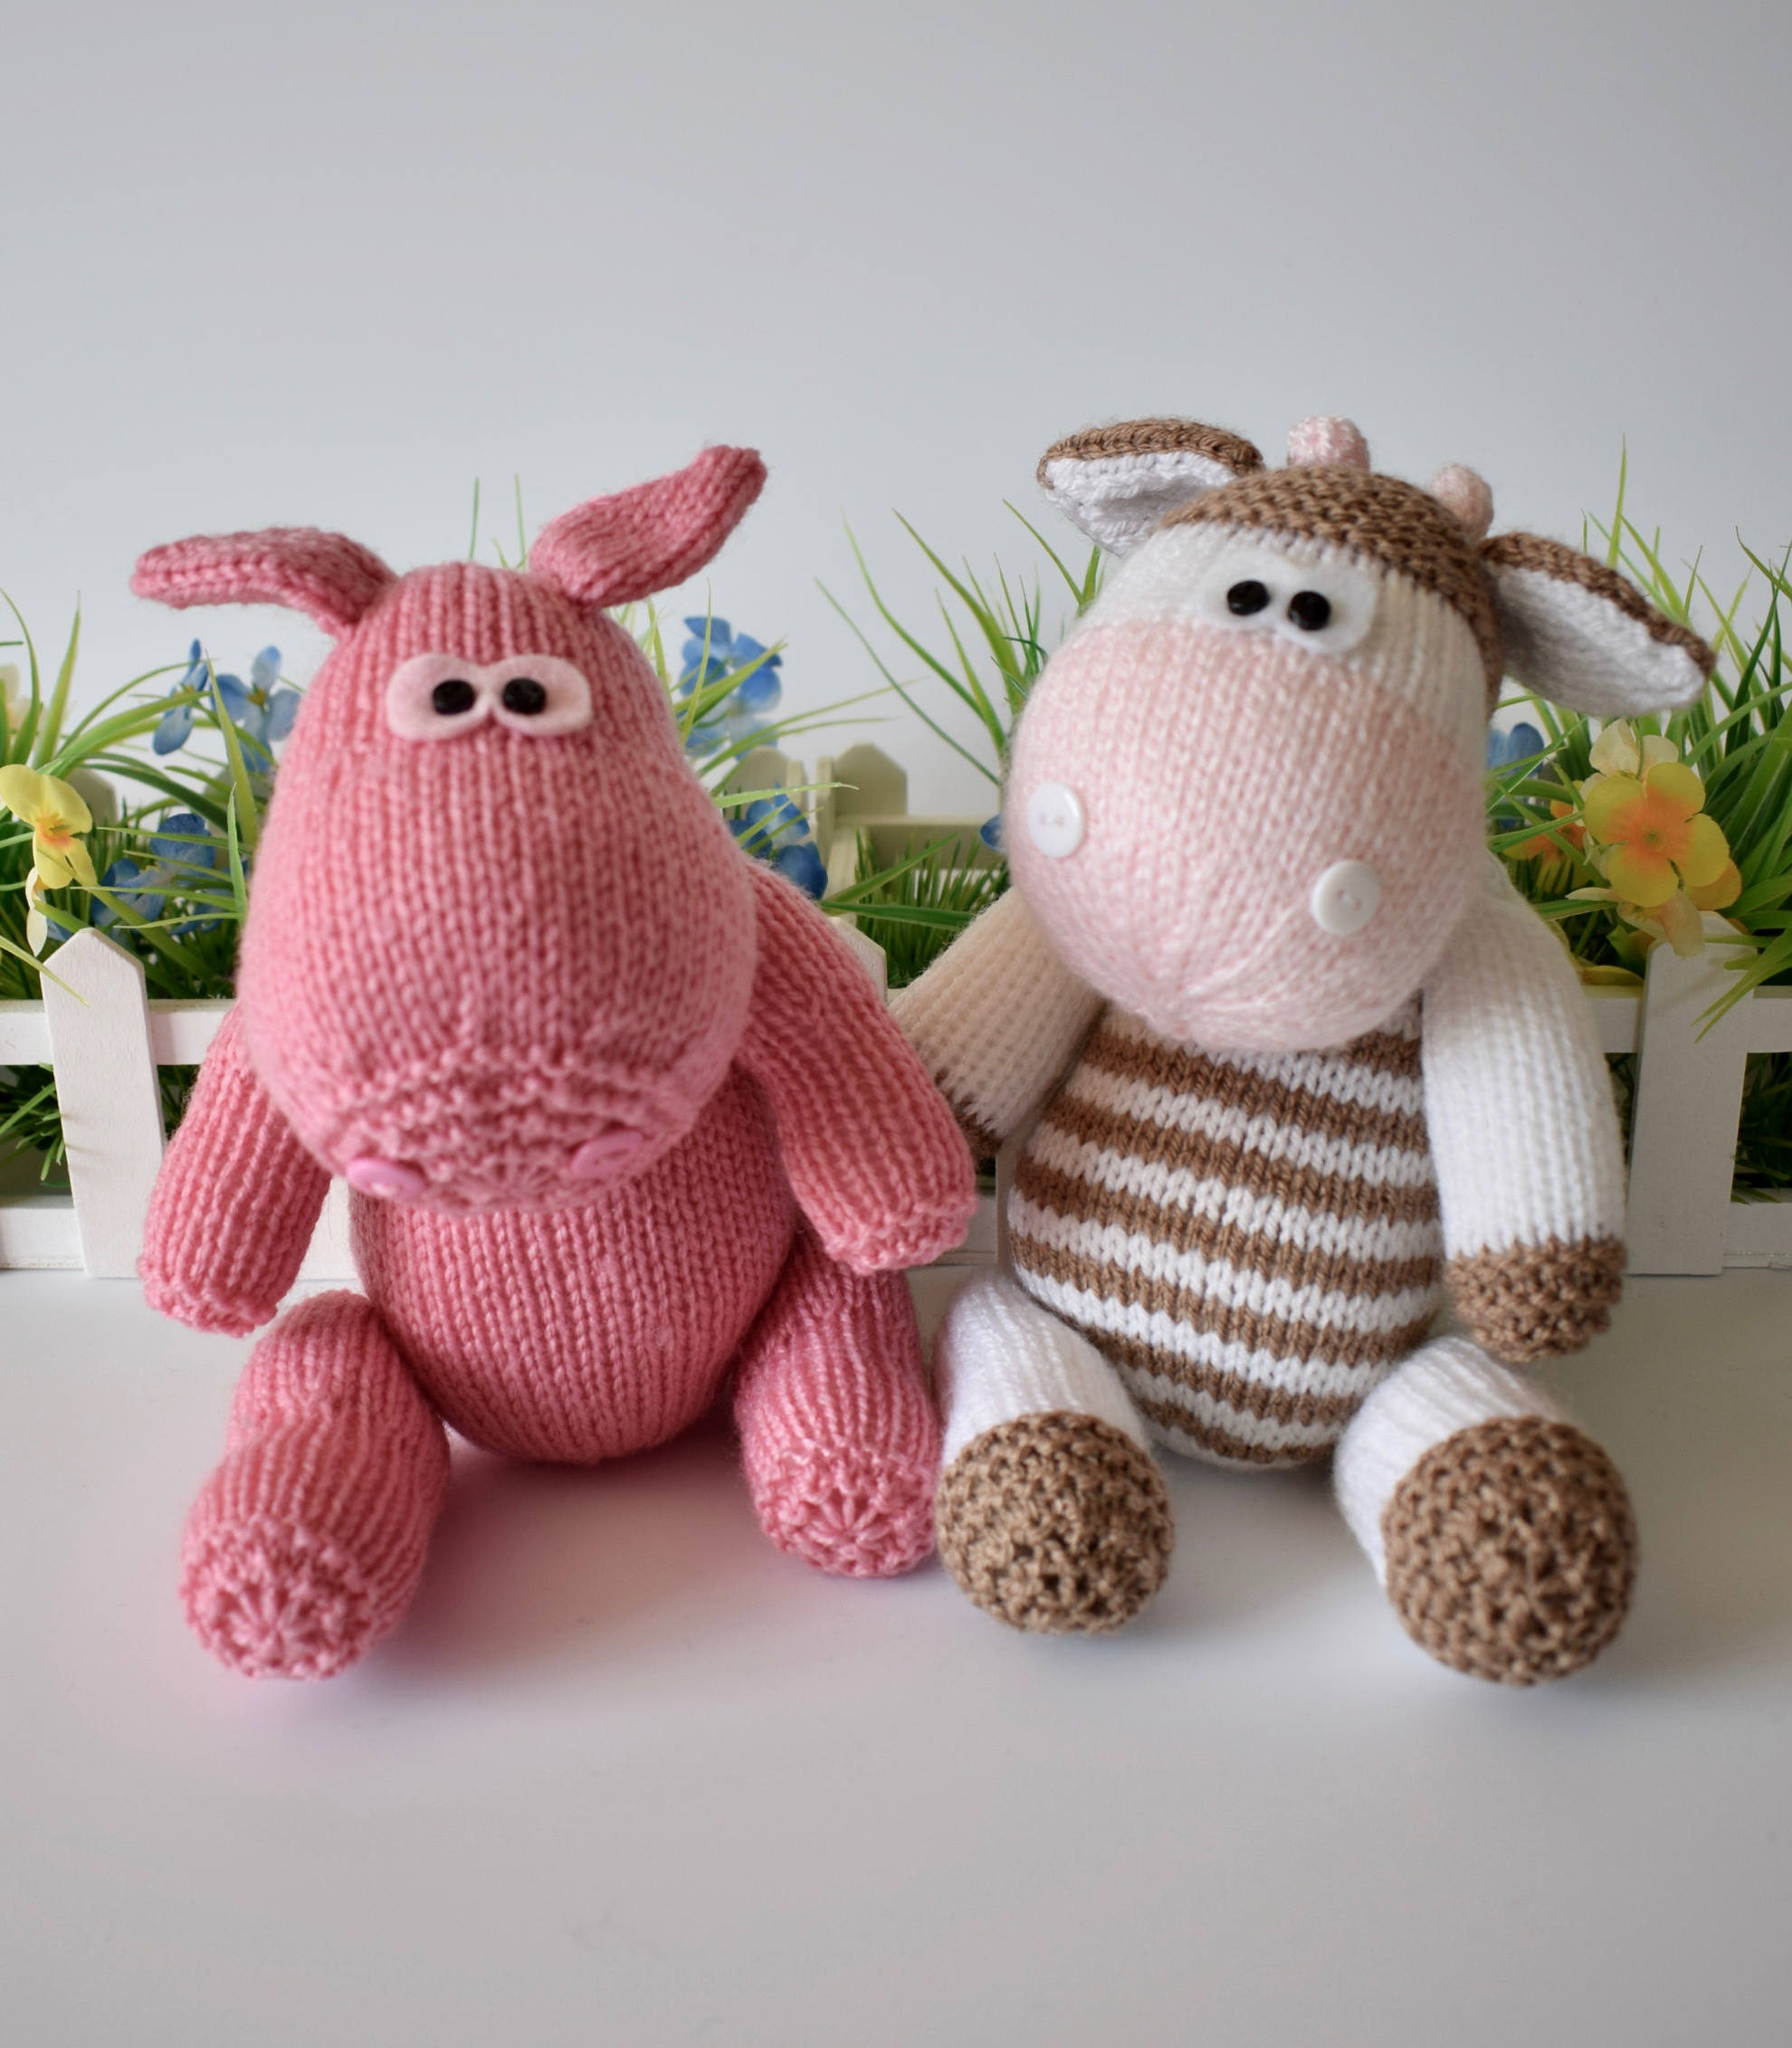 Knitting Pattern for Chutney Cow and Pickles Pig